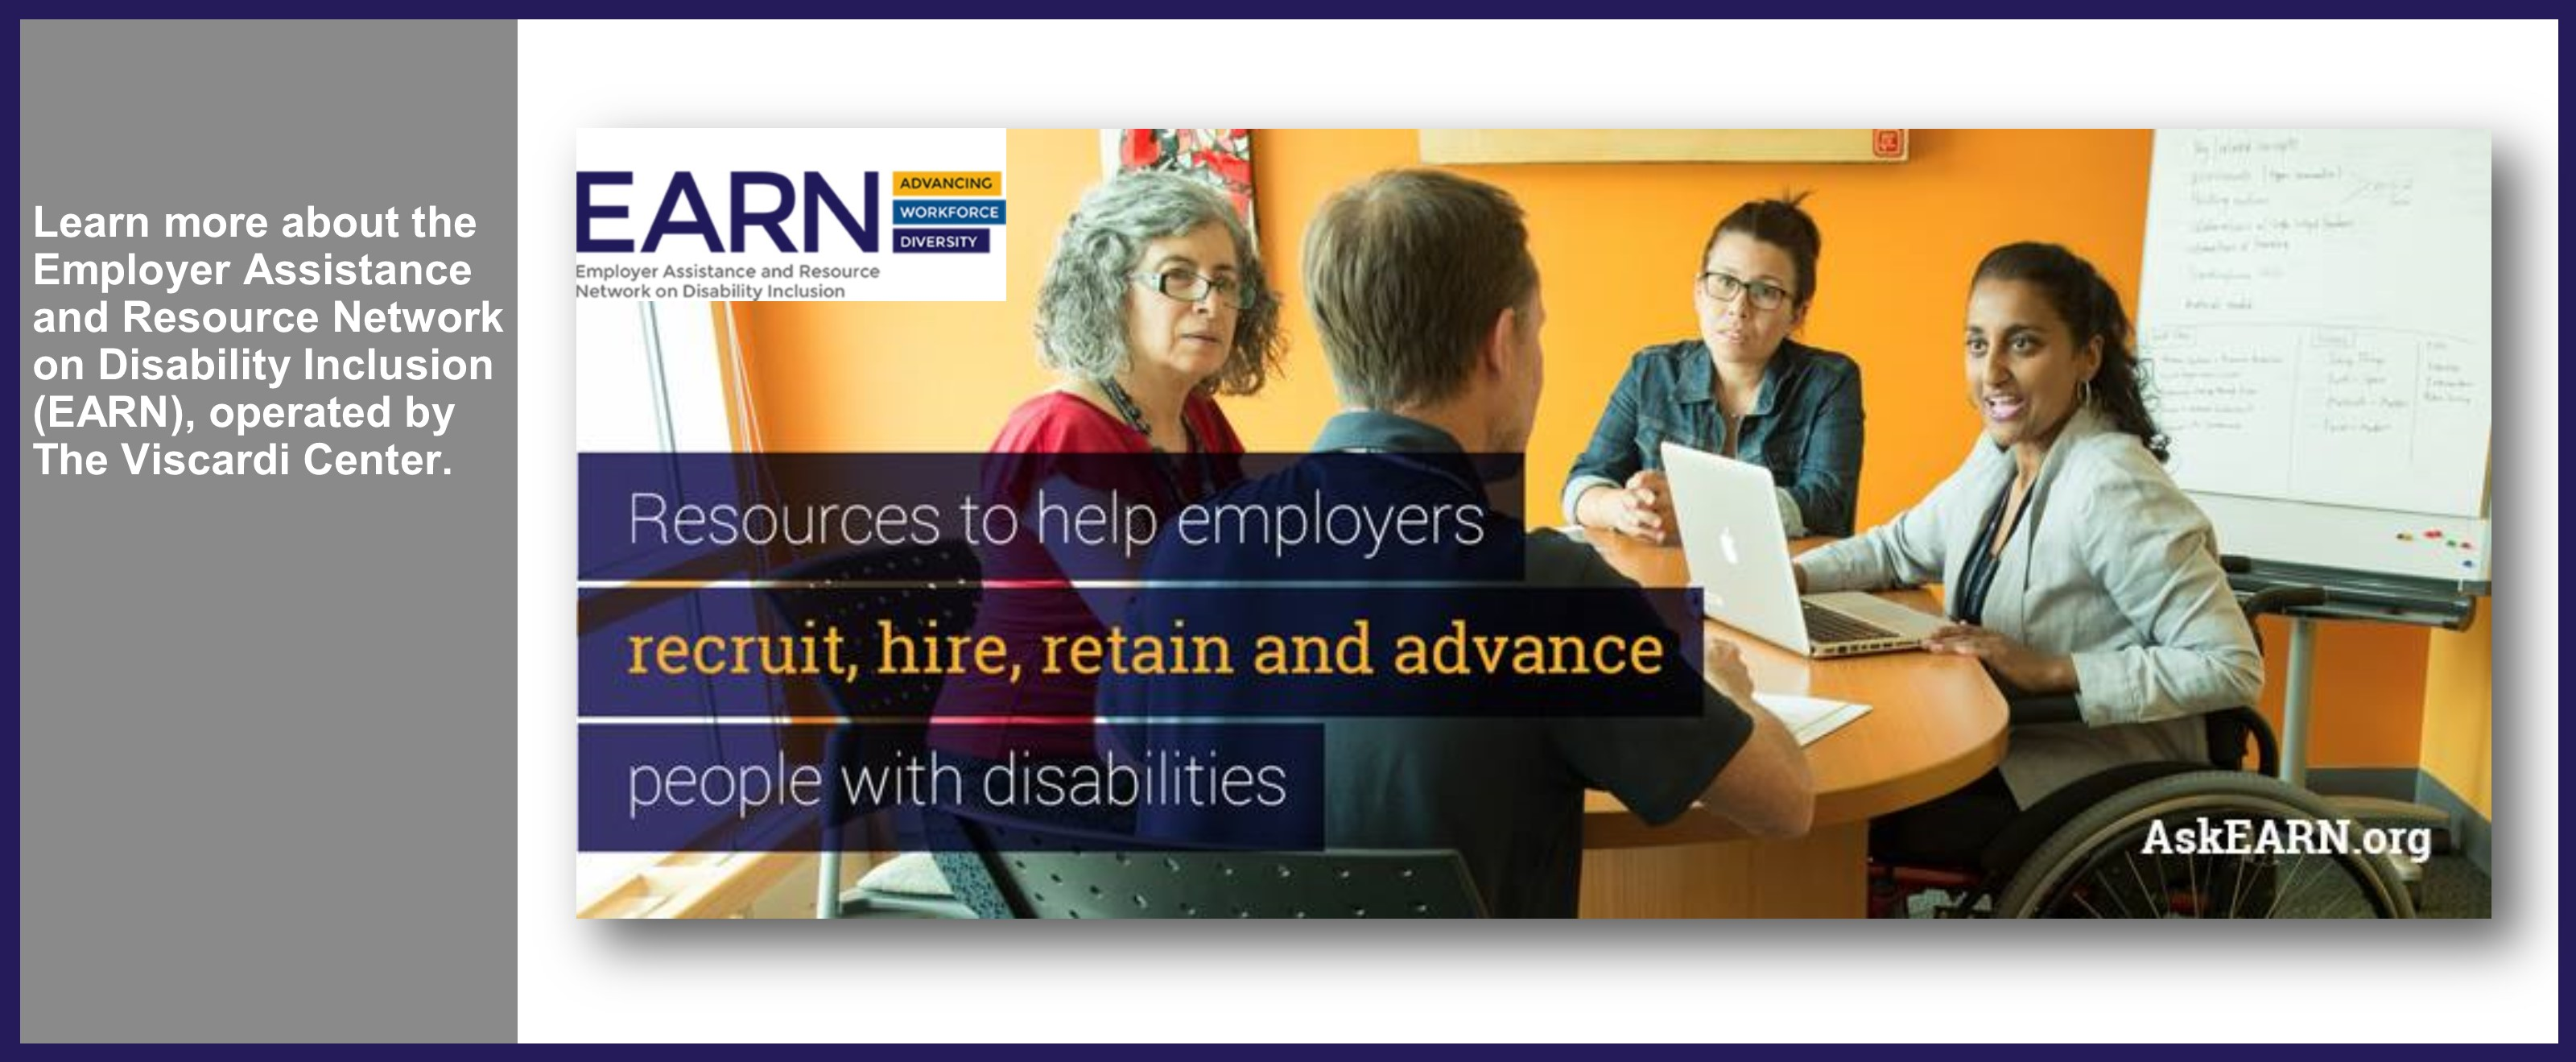 Learn more about the Employer Assistance and Resource Network on Disability Inclusion (EARN), operated by The Viscardi Center. Resources to help employers recruit, hire, retain and advance people with disabilities. AskEARN.org